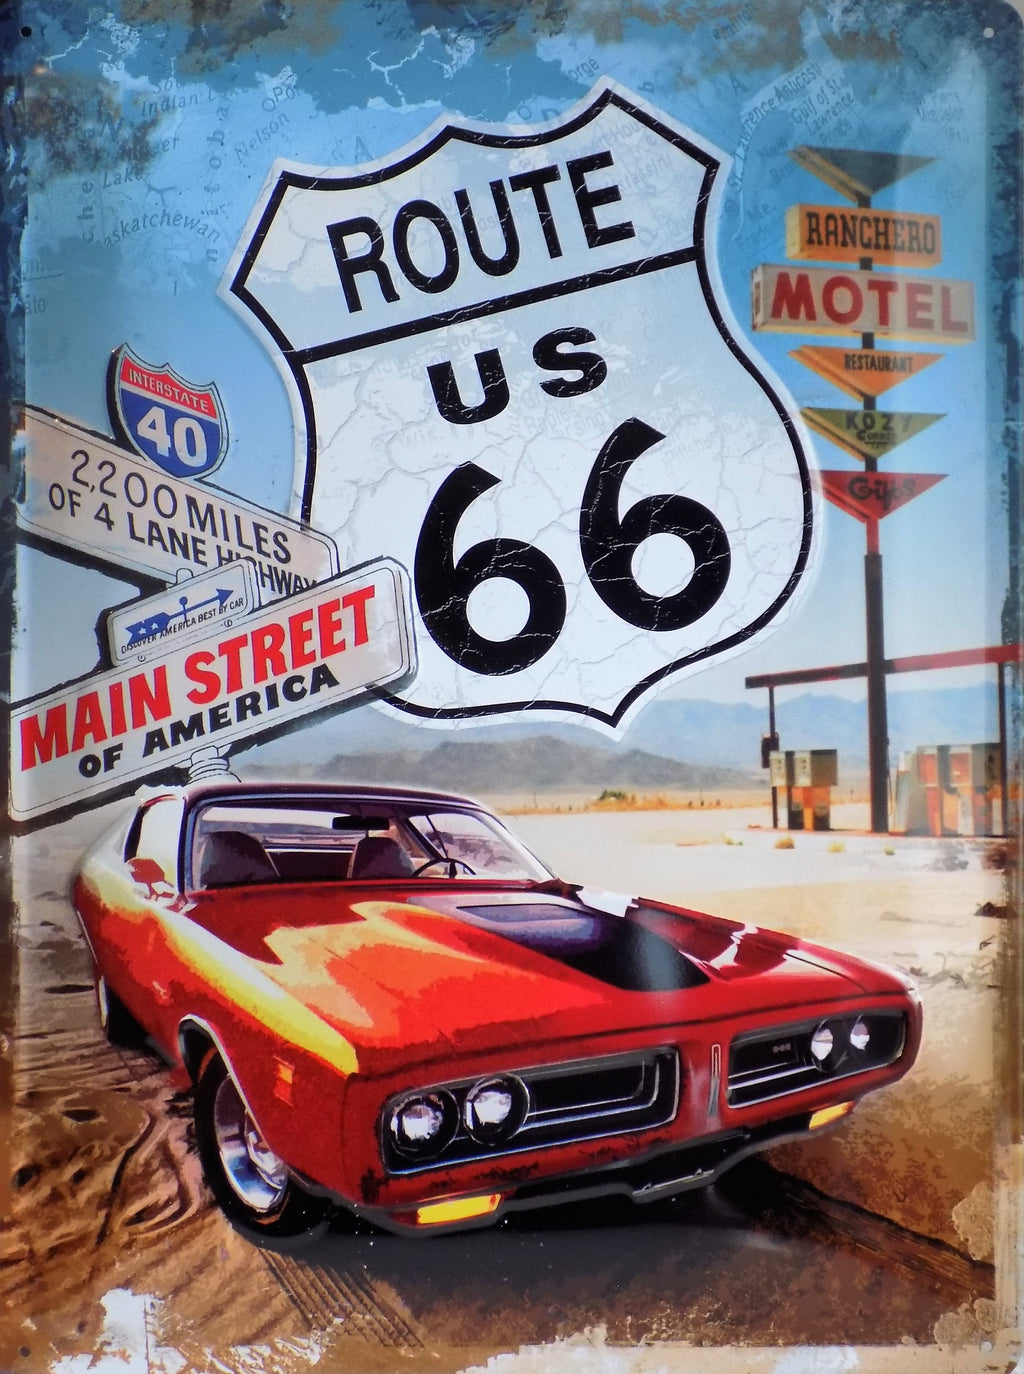 plaque métal vintage ROUTE 66 MAIN STREET OF AMERICA - TOFMOBILE